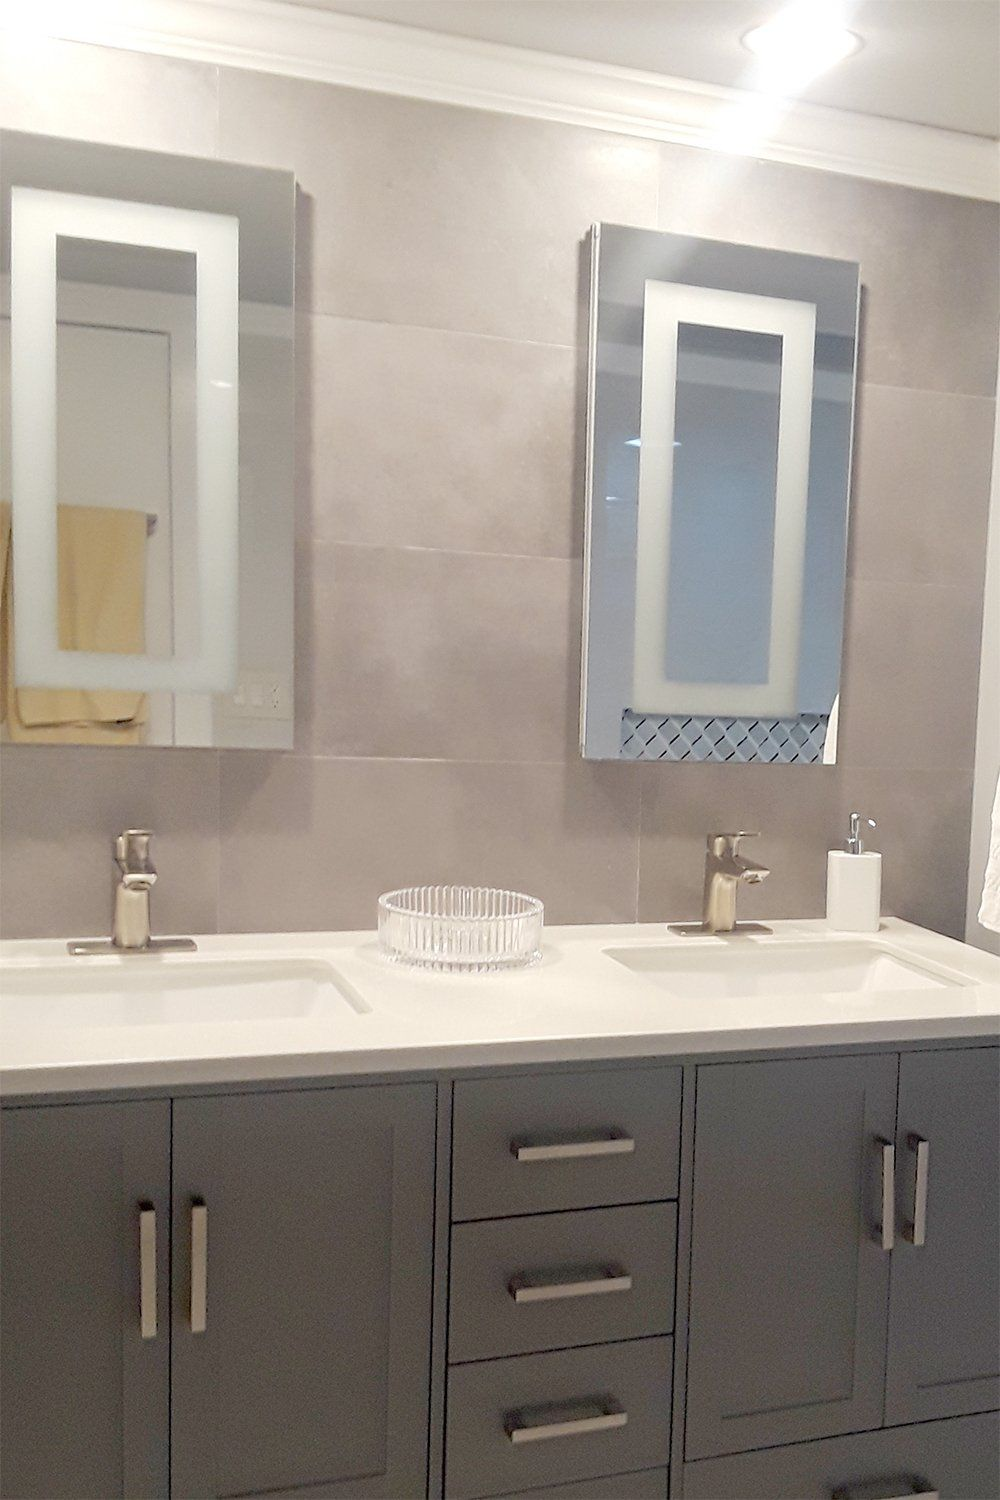 Mirrors And Marble Brand Commercial Grade Flush Mounted Led Lighted Led Bathroom Mirror Medicine C Bathroom Mirror Medicine Cabinet Mirror Led Mirror Bathroom